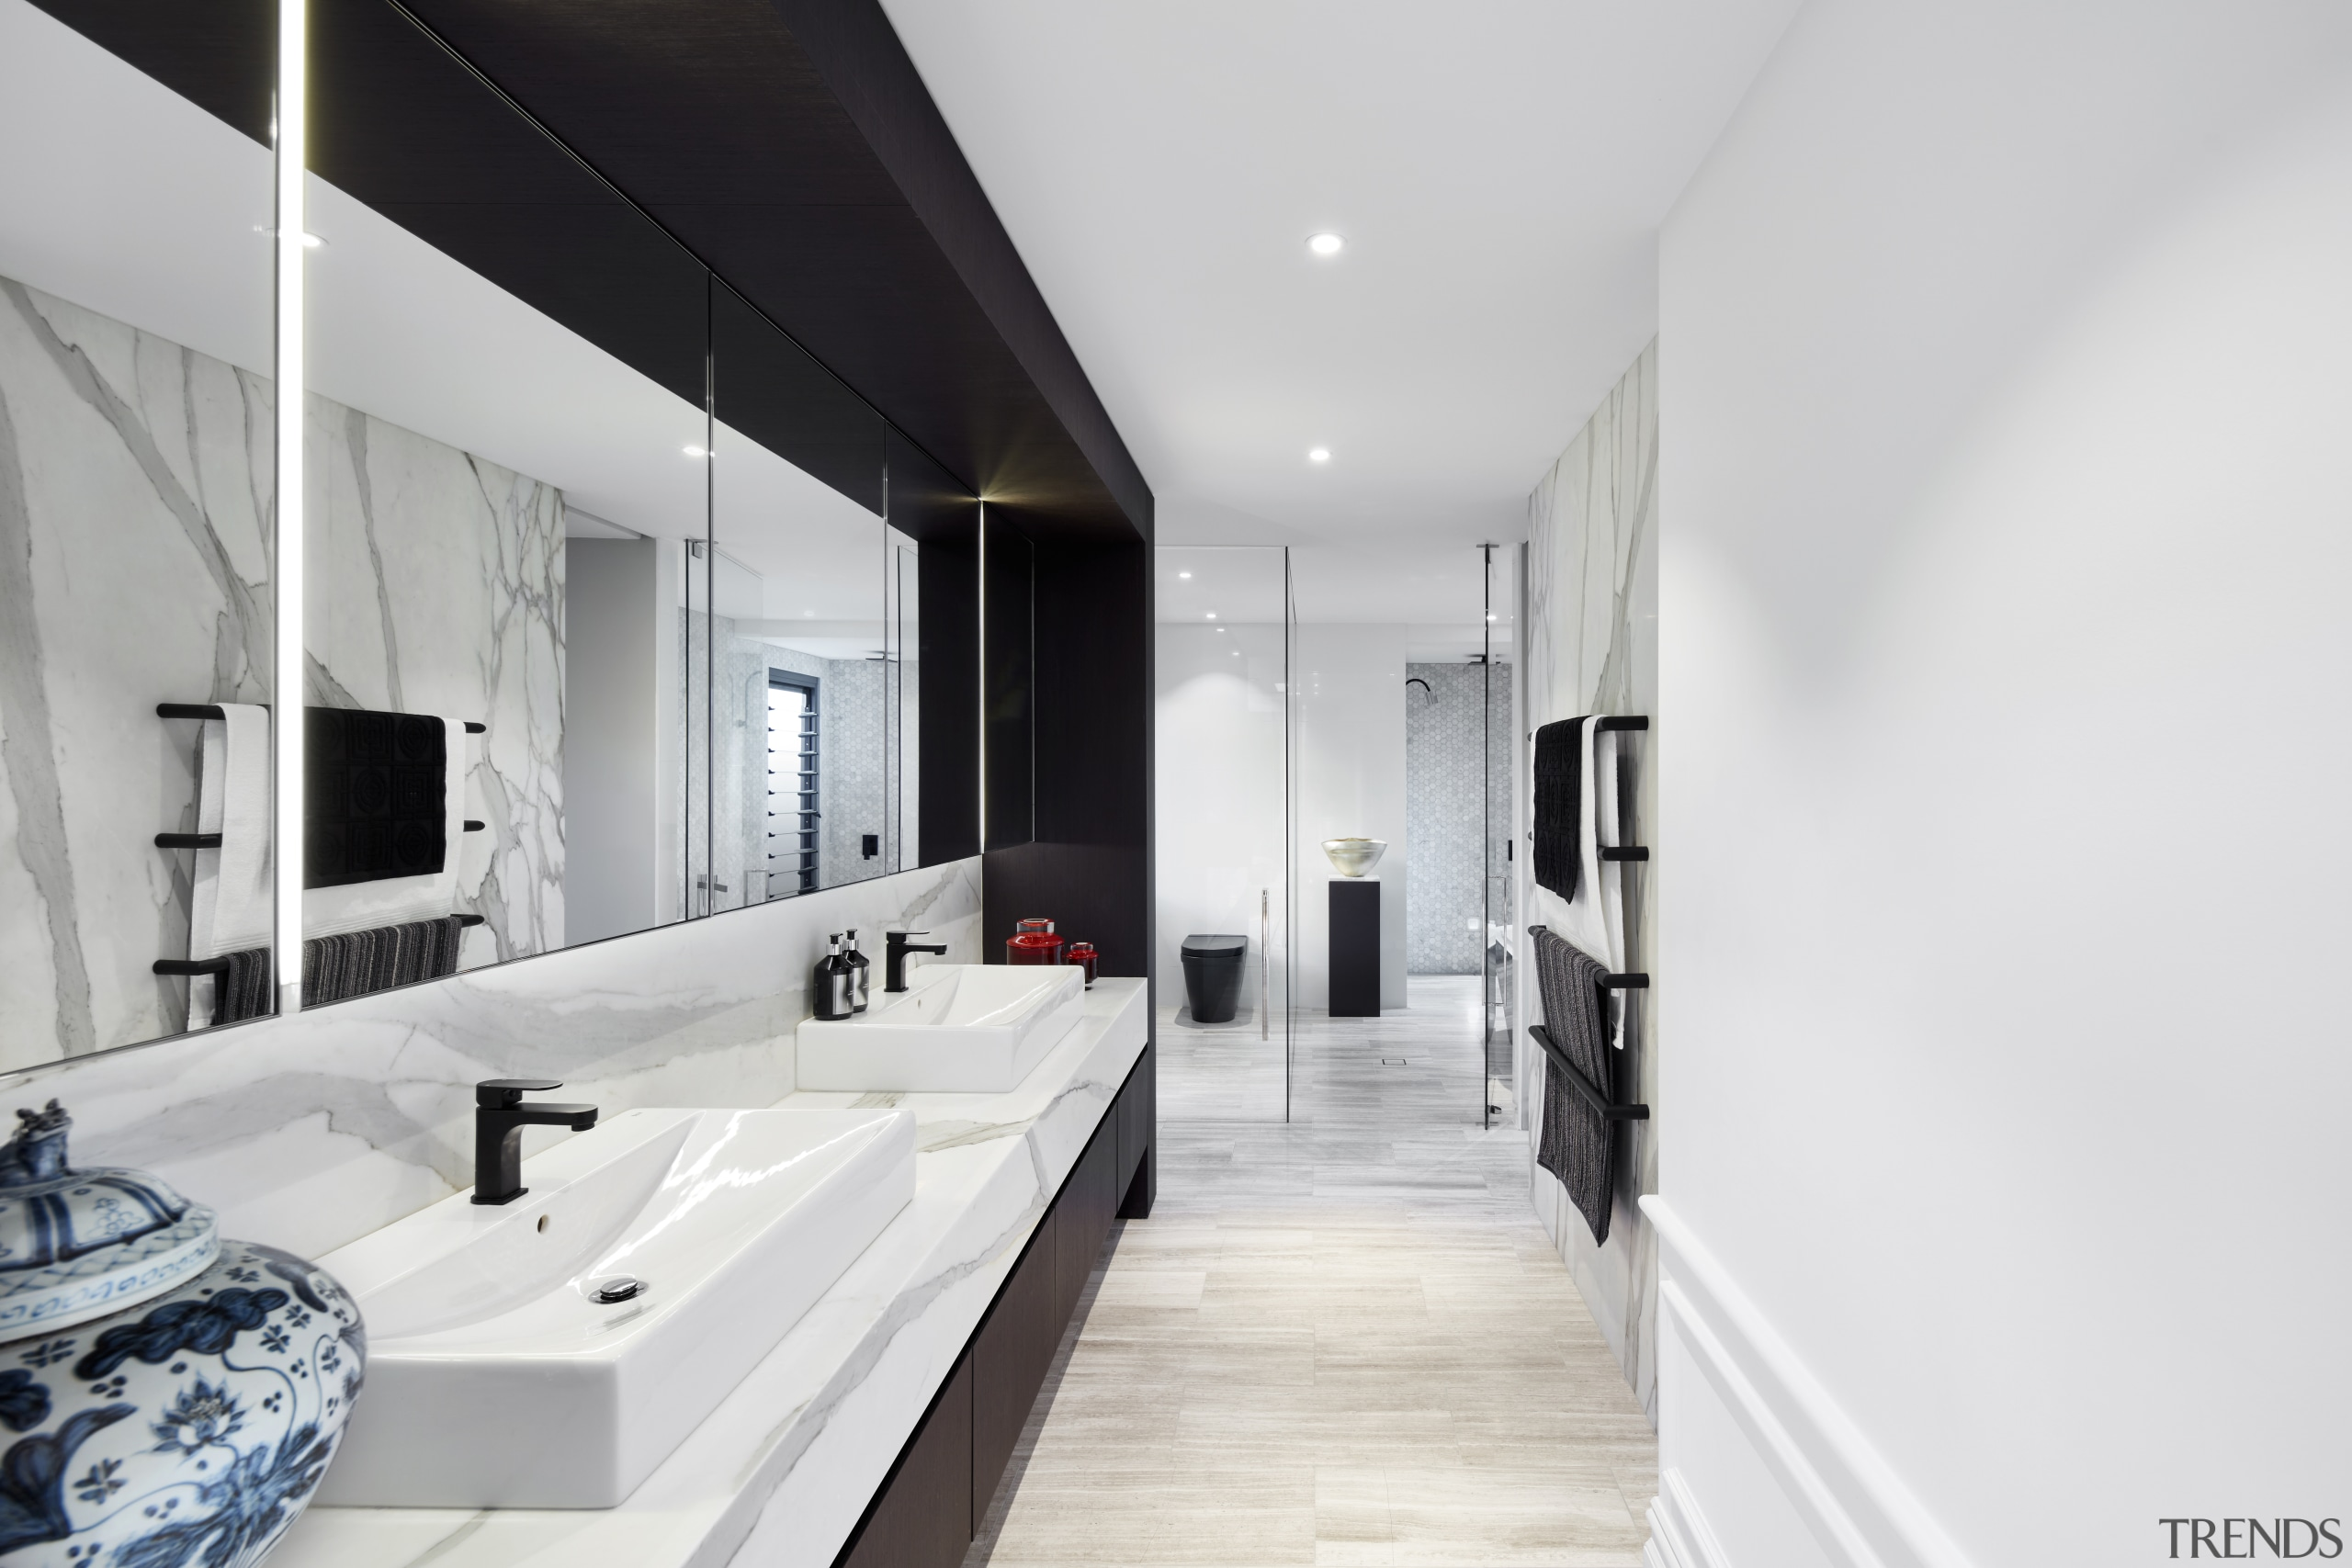 What a difference great design makes. This fresh, architecture, bathroom, black-and-white, interior design, tiles, Archer Design